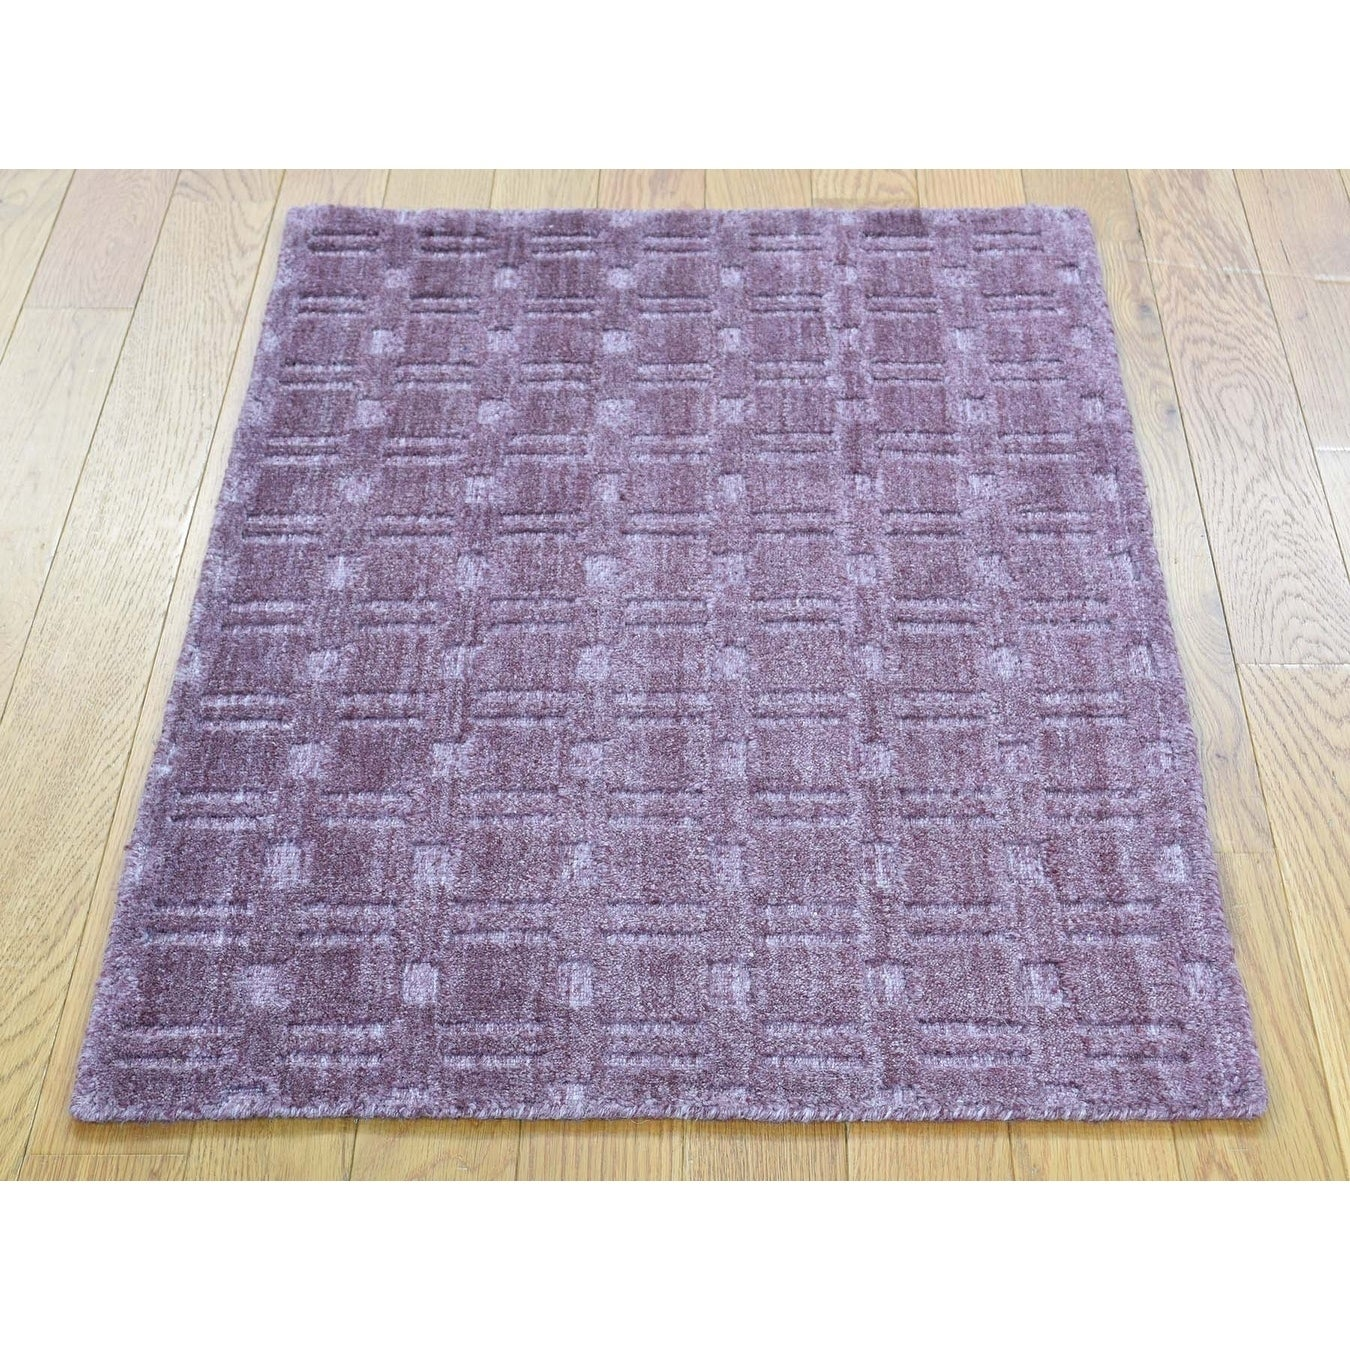 Hand Knotted Purple Hand-Loomed with Art Silk Oriental Rug - 2 x 3